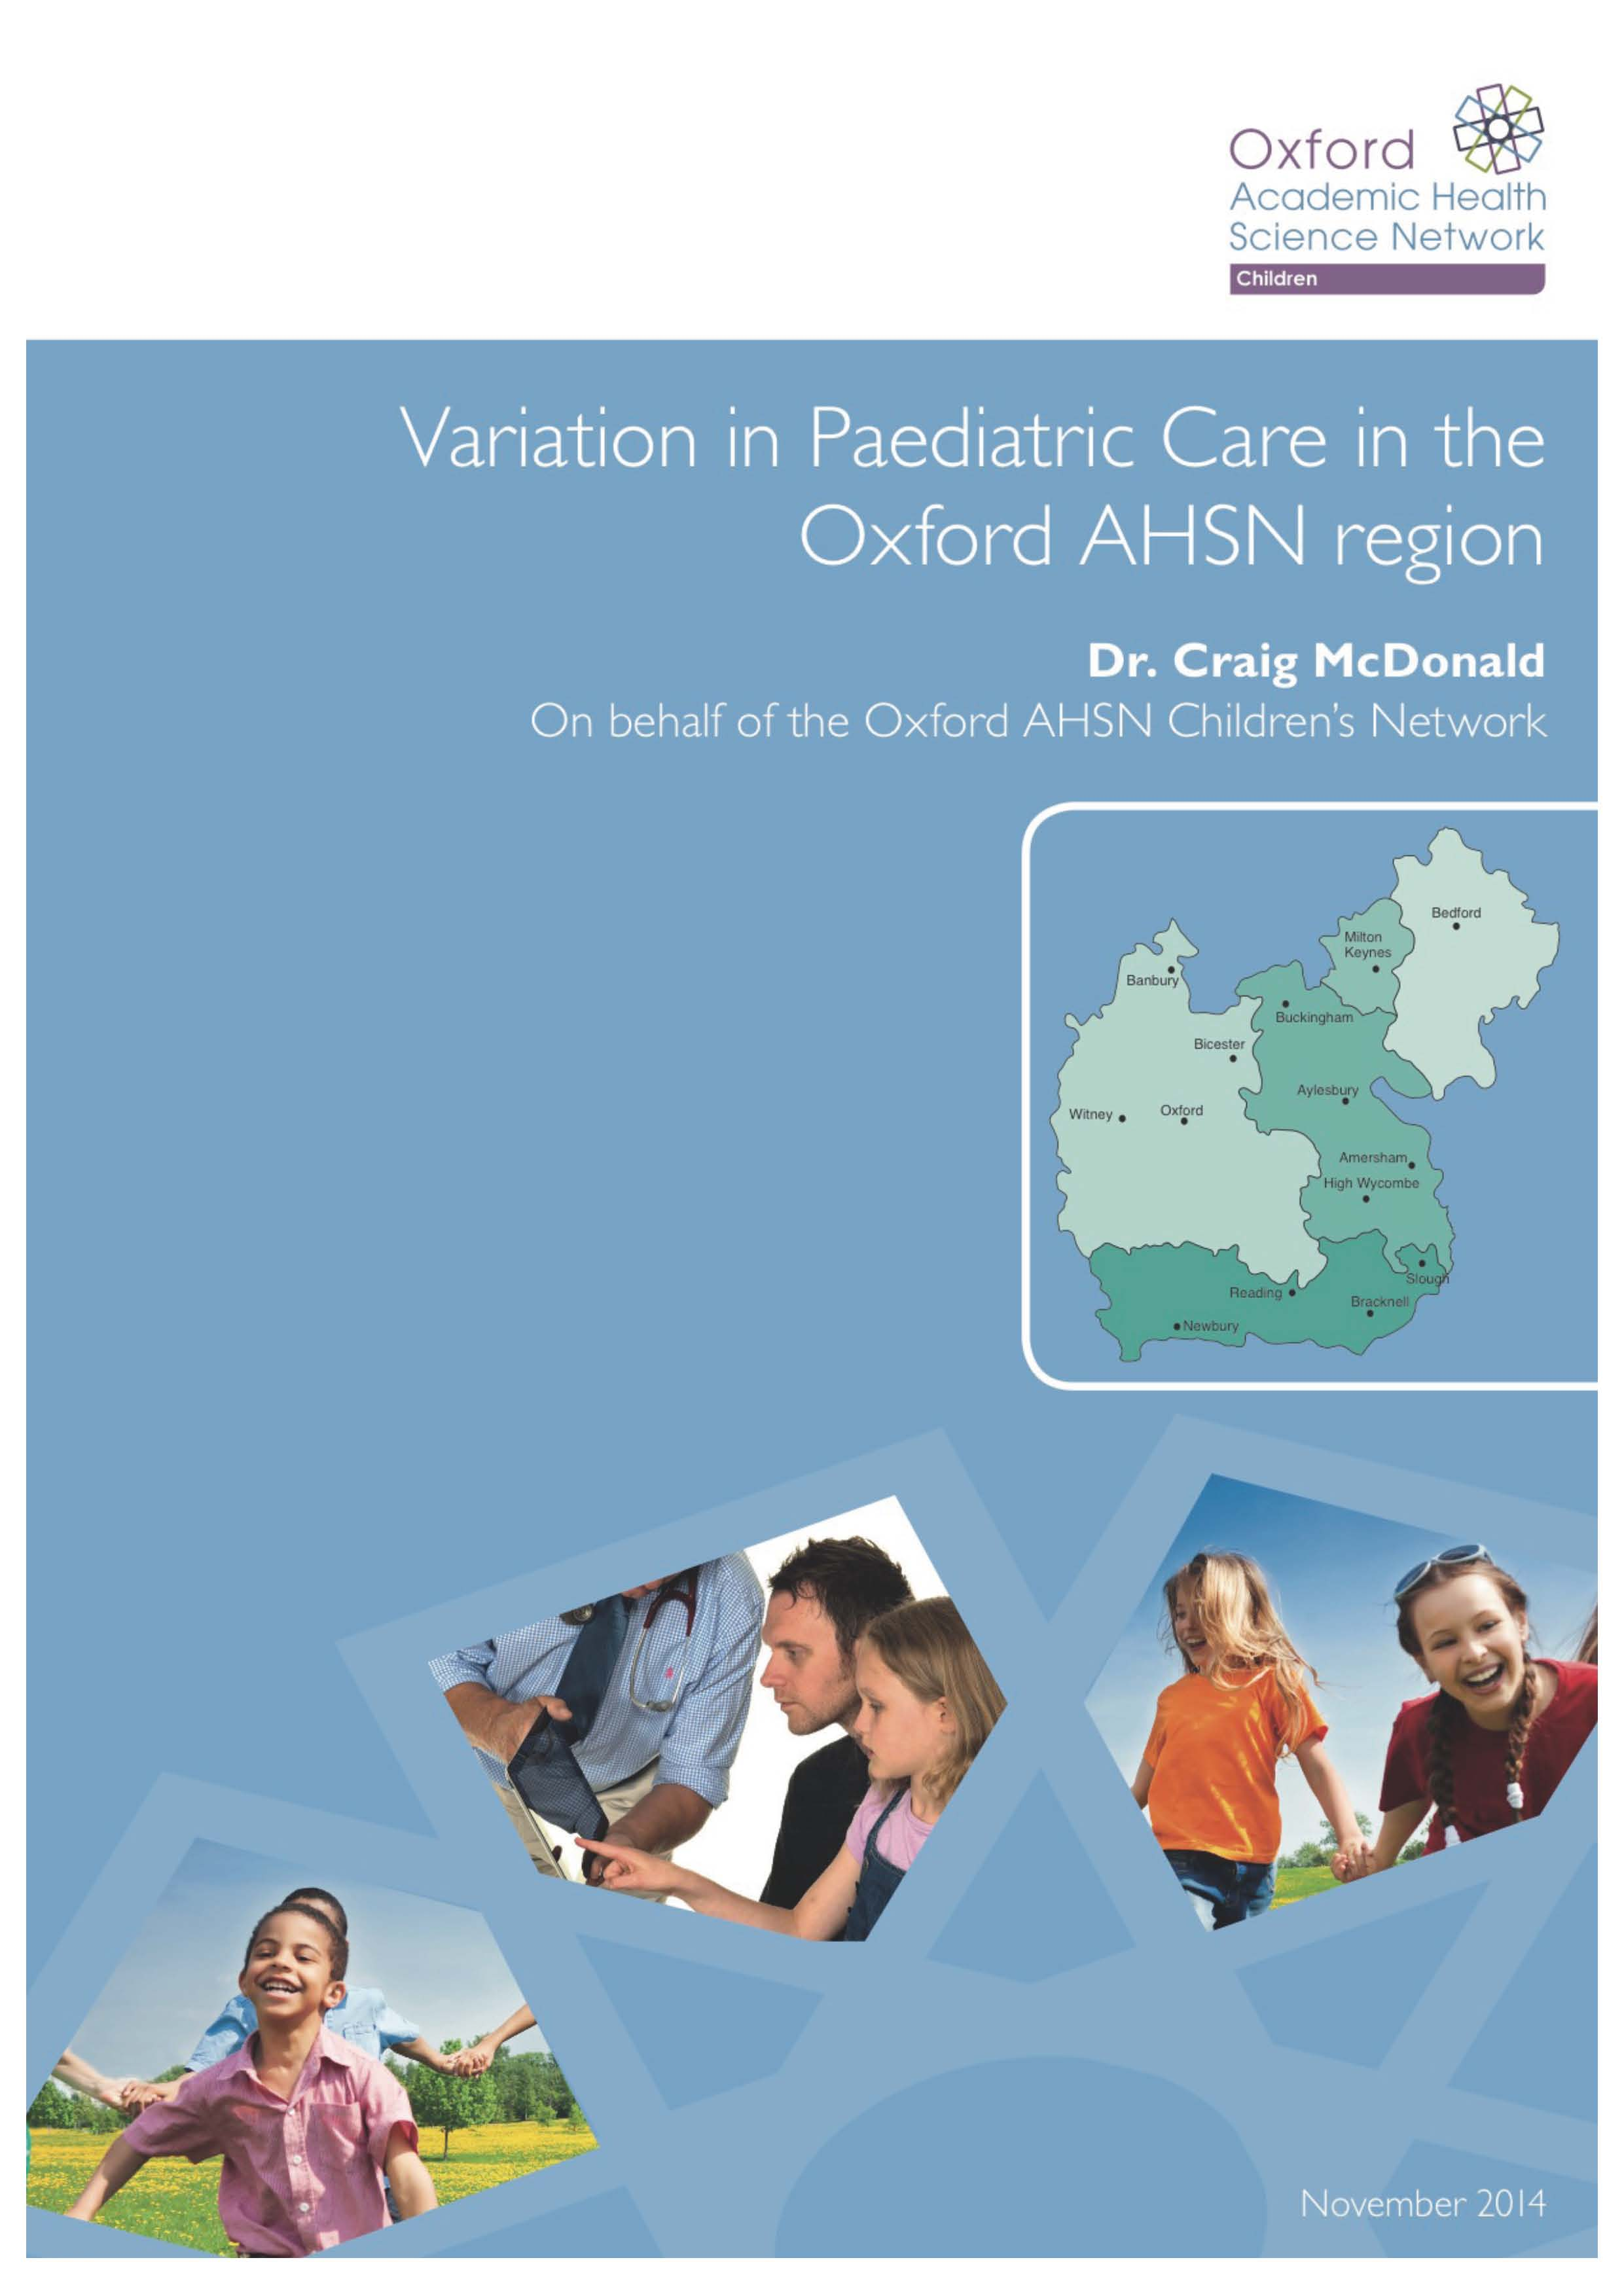 Variation in Paediatric care, Oxford AHSN, November 2014